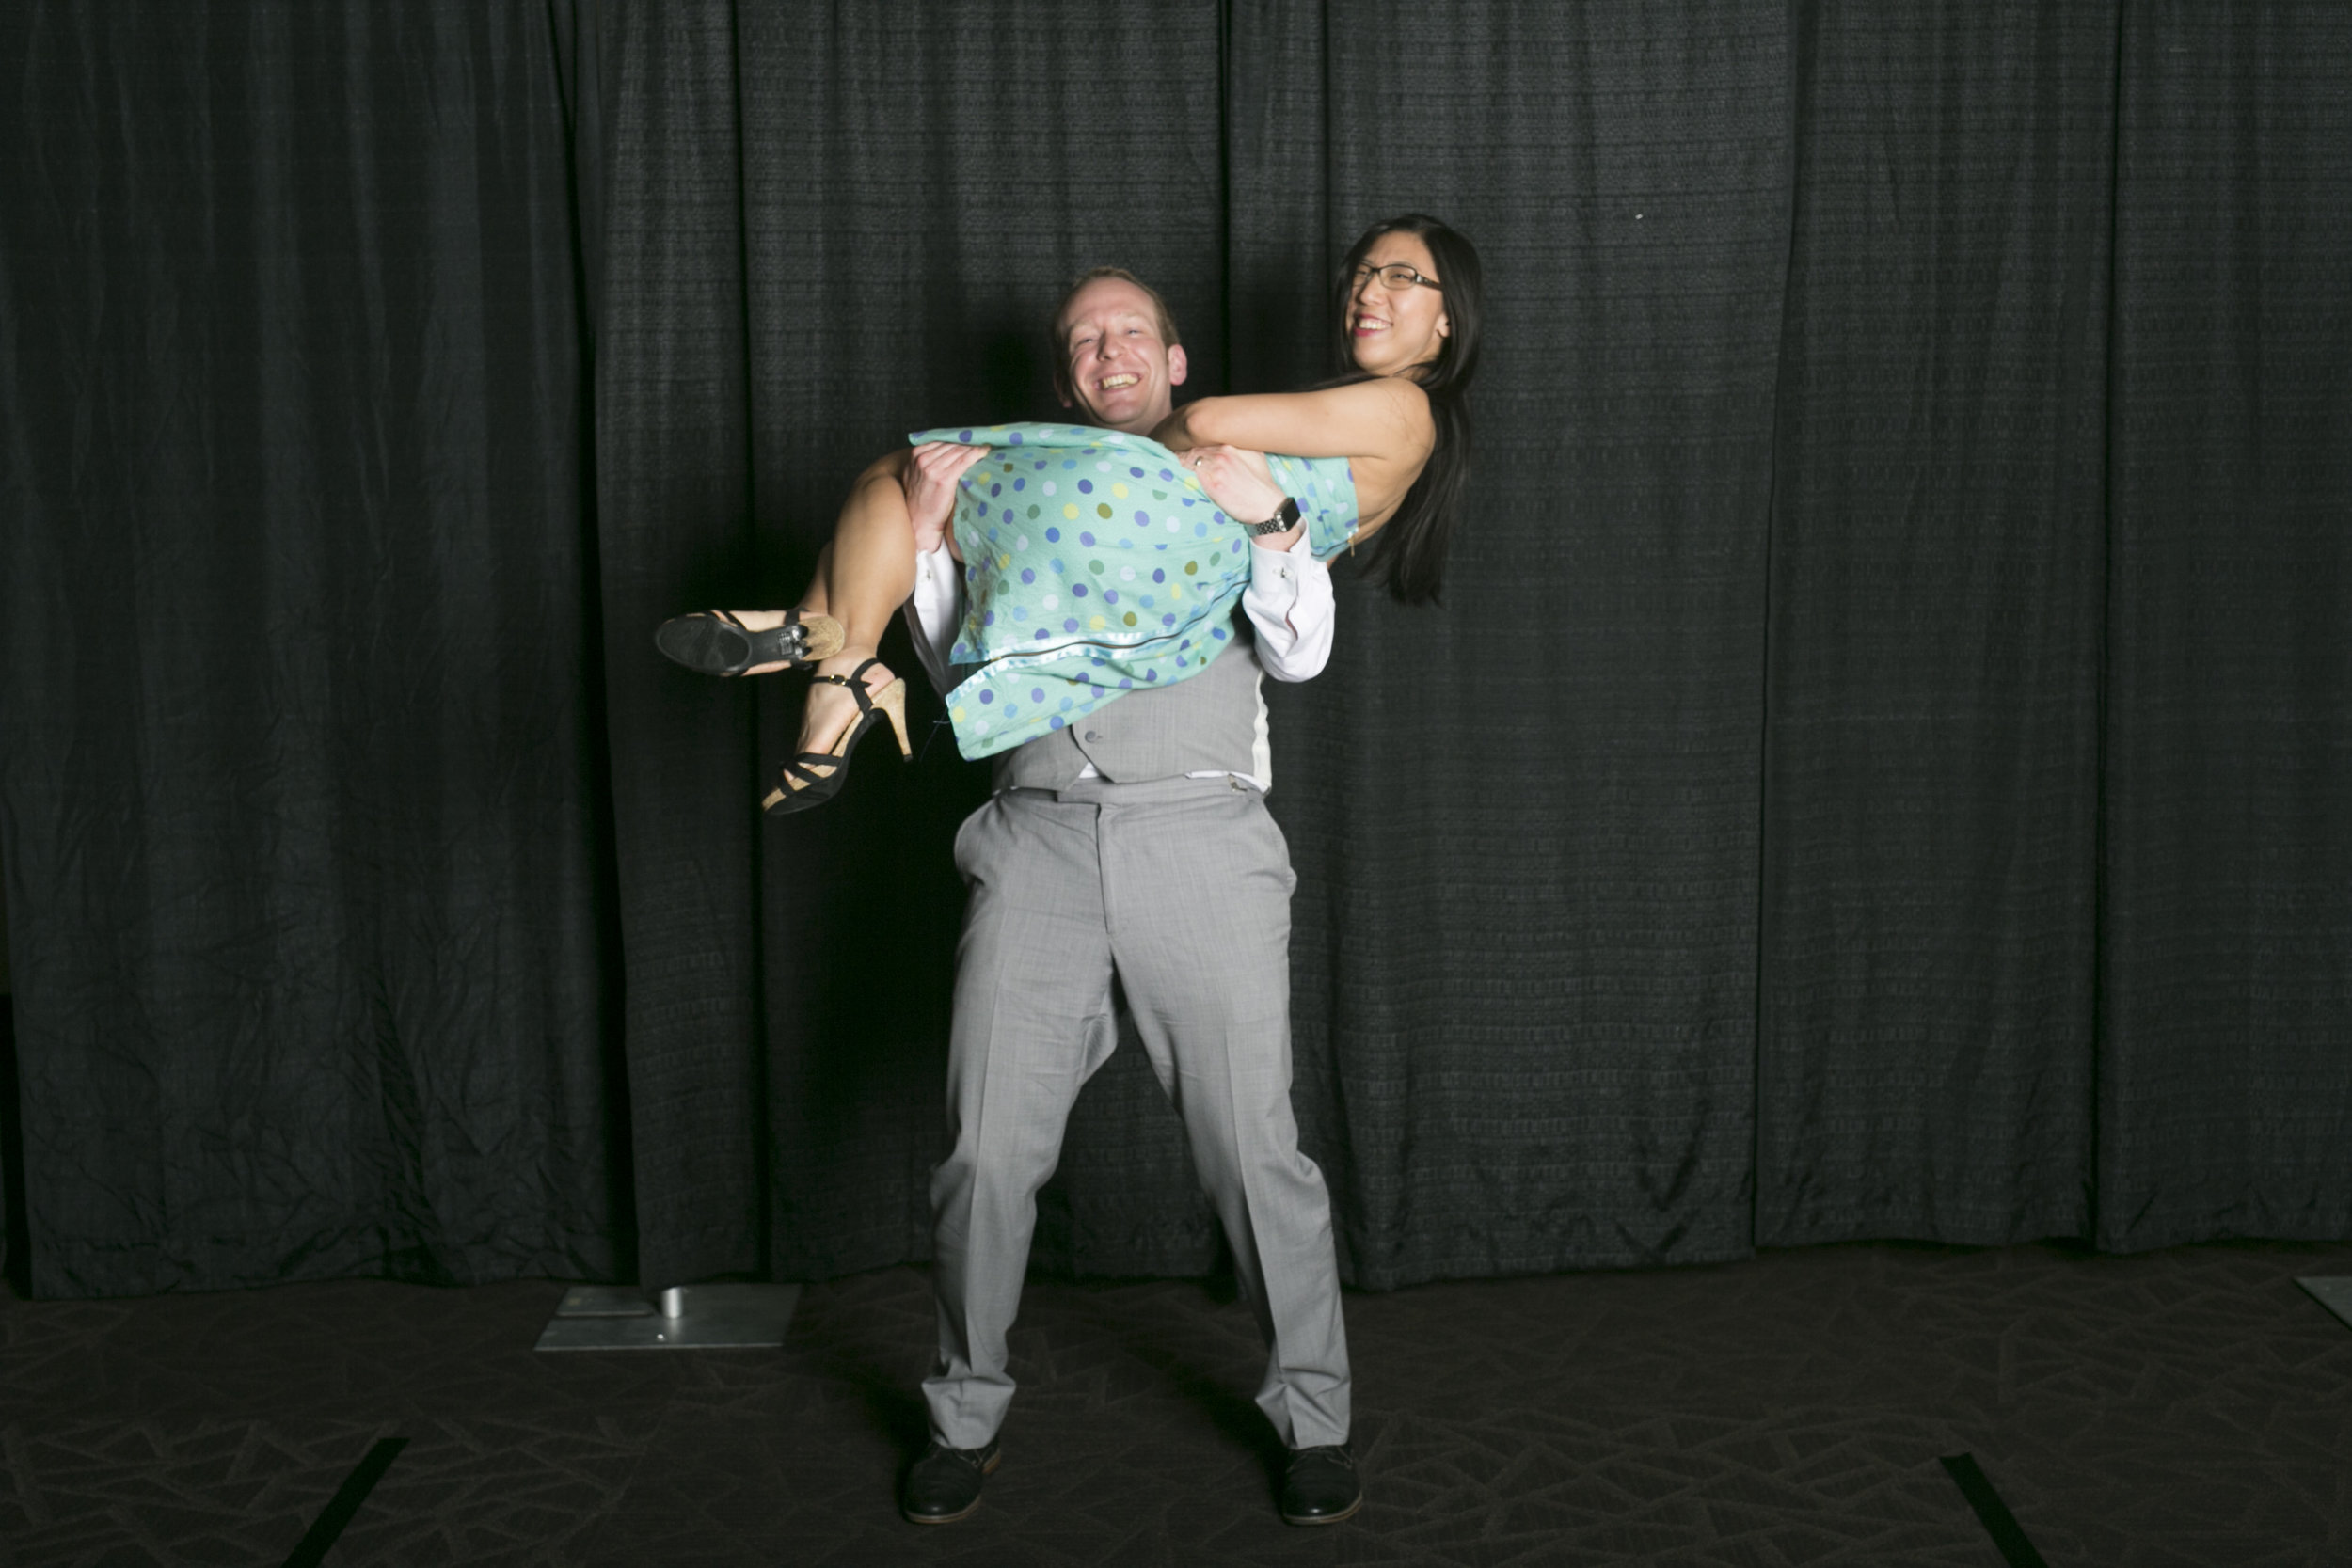 wedding photo booth-44.jpg